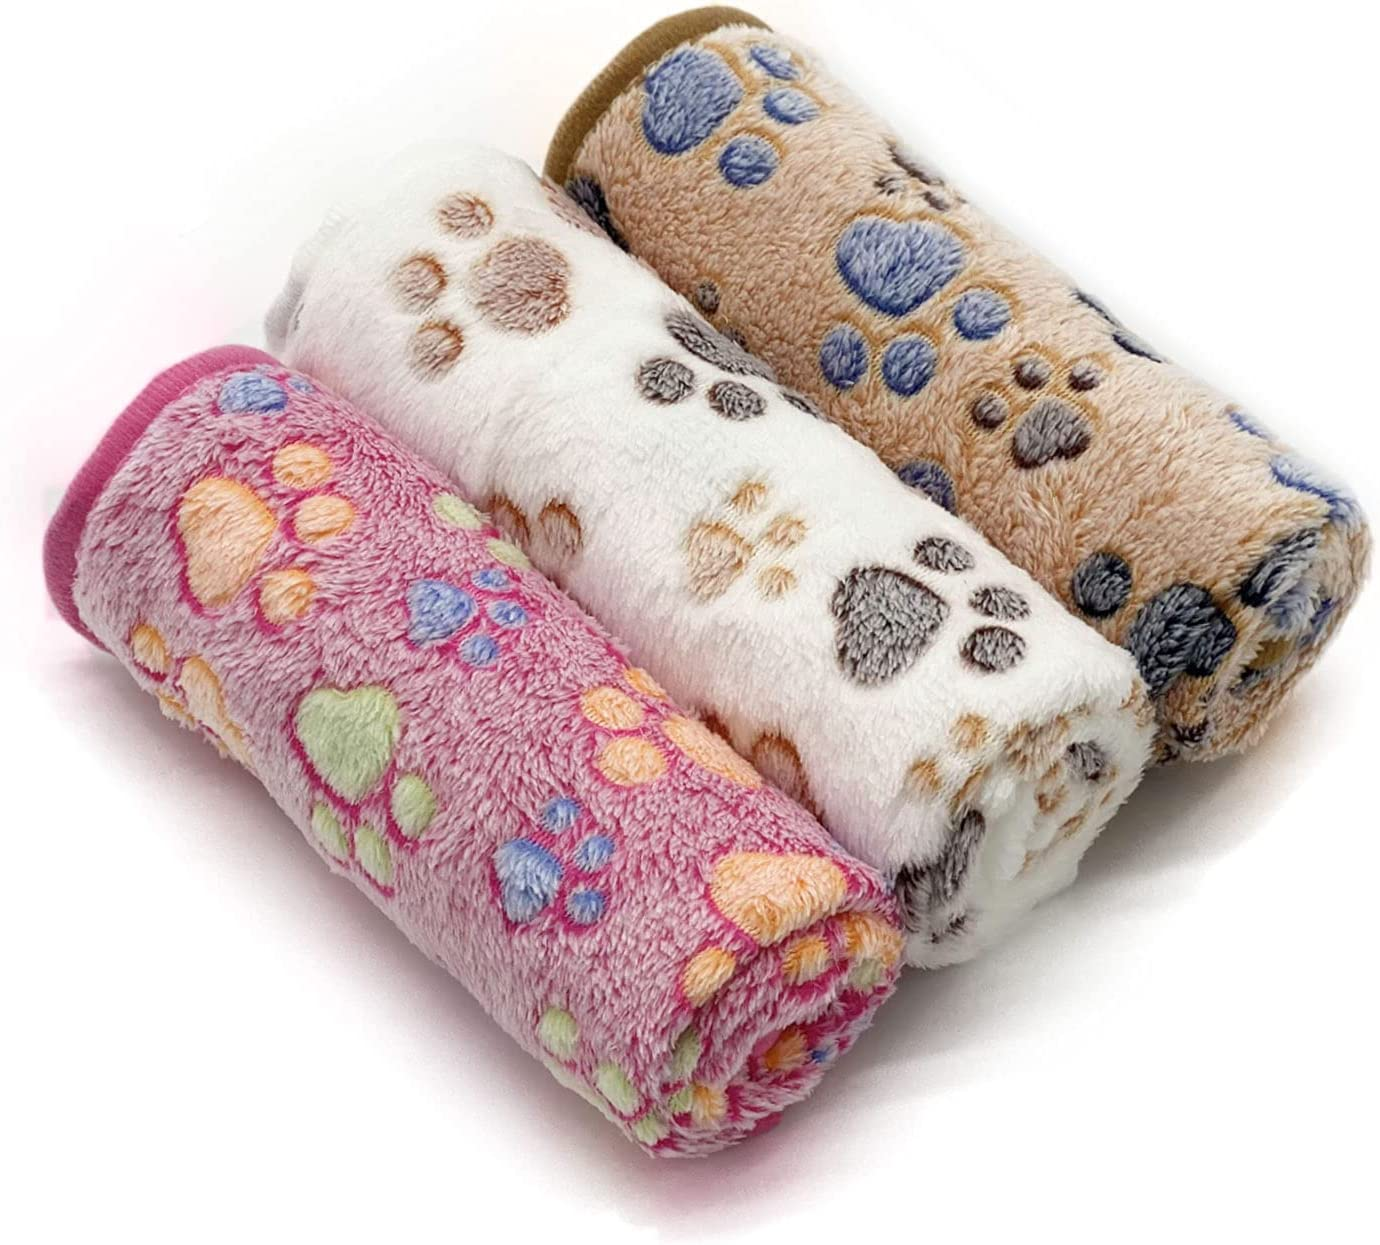 1 Pack 3 It is very popular Puppy Dog Blankets Super Warm Soft Fluffy Mat Sleep Pre Limited price